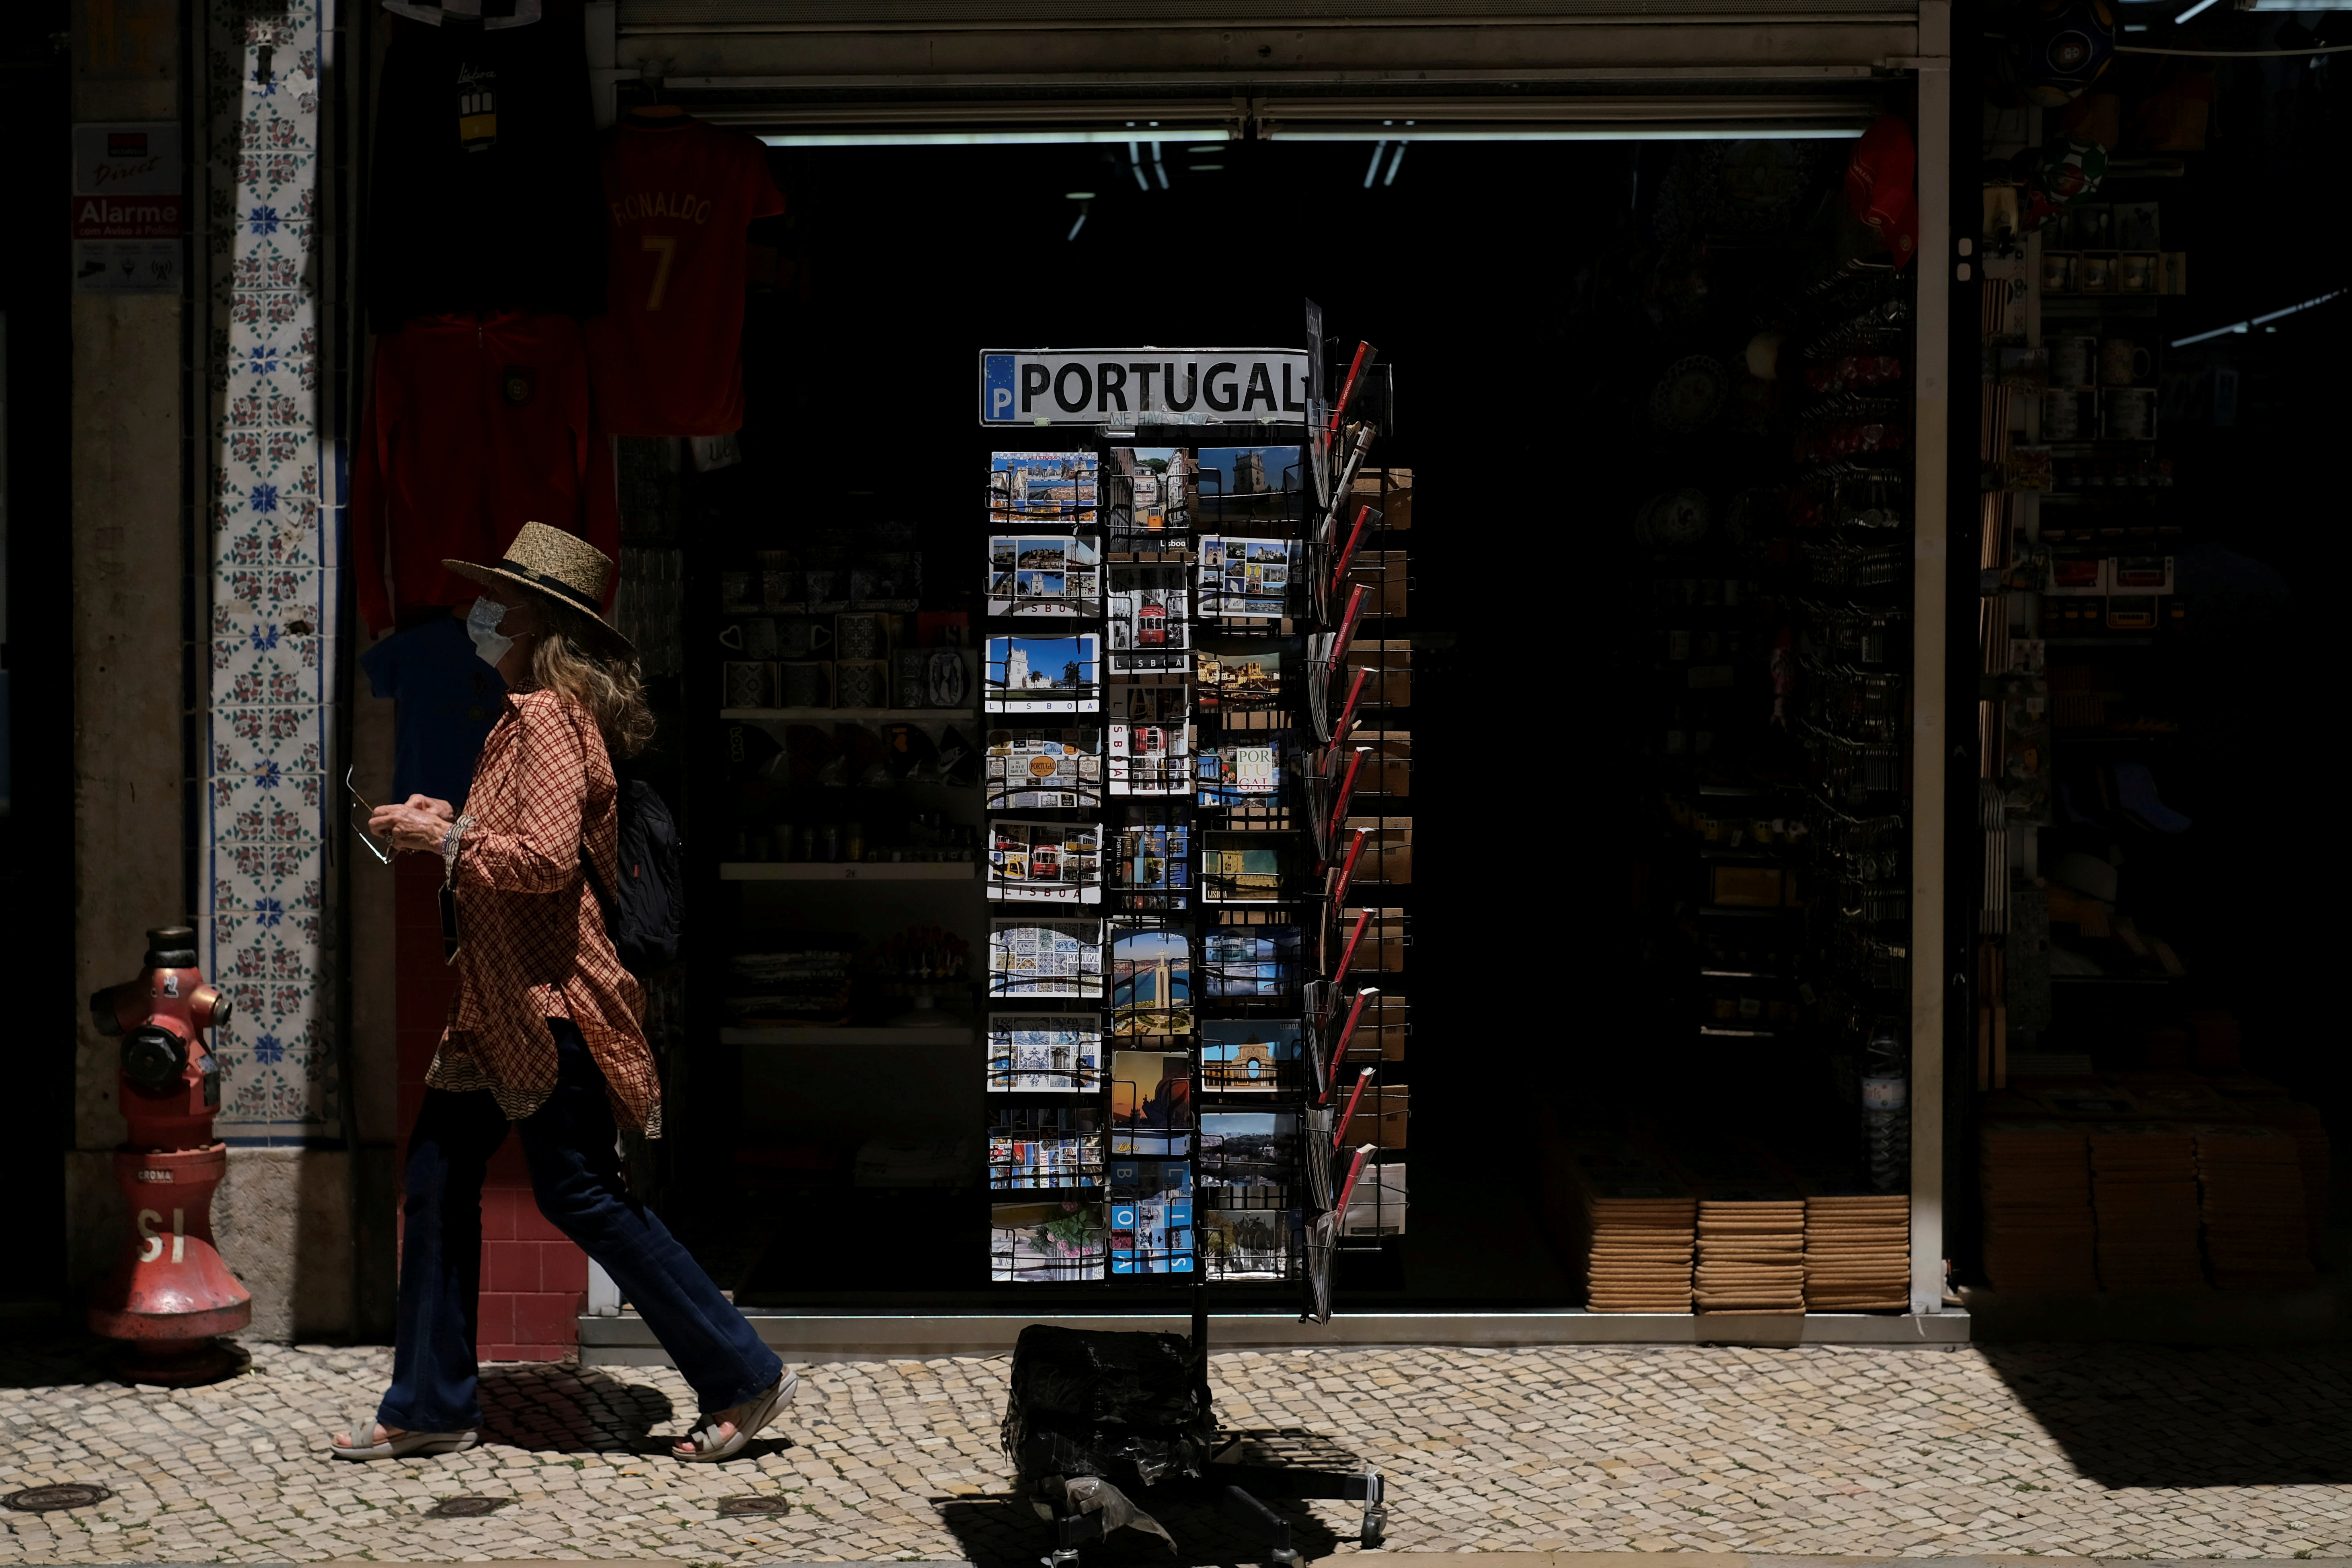 Delta variant 'spreading rapidly' from Lisbon to rest of Portugal